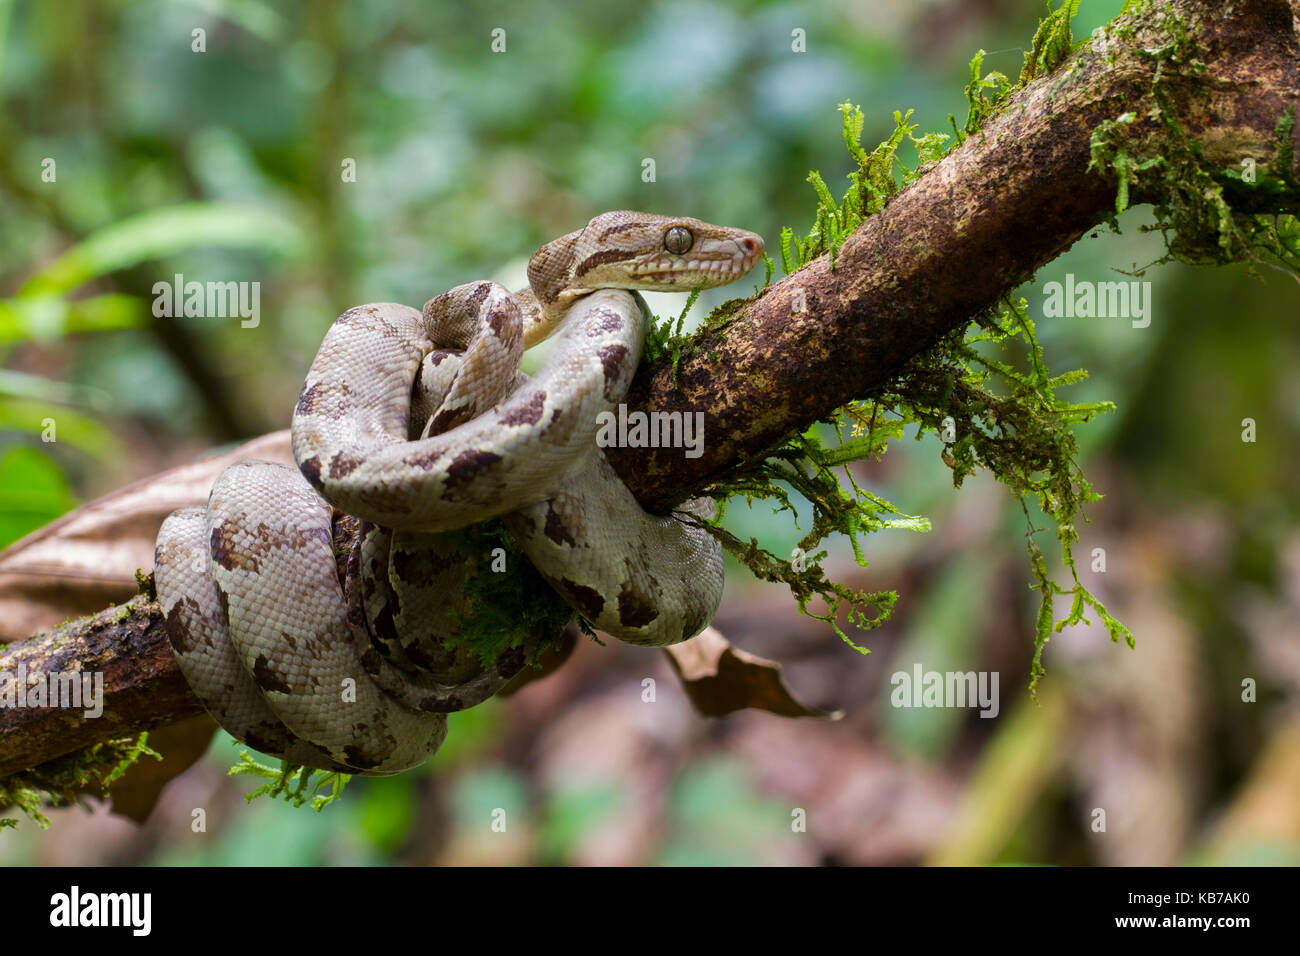 snakes of ecuador stock photos u0026 snakes of ecuador stock images